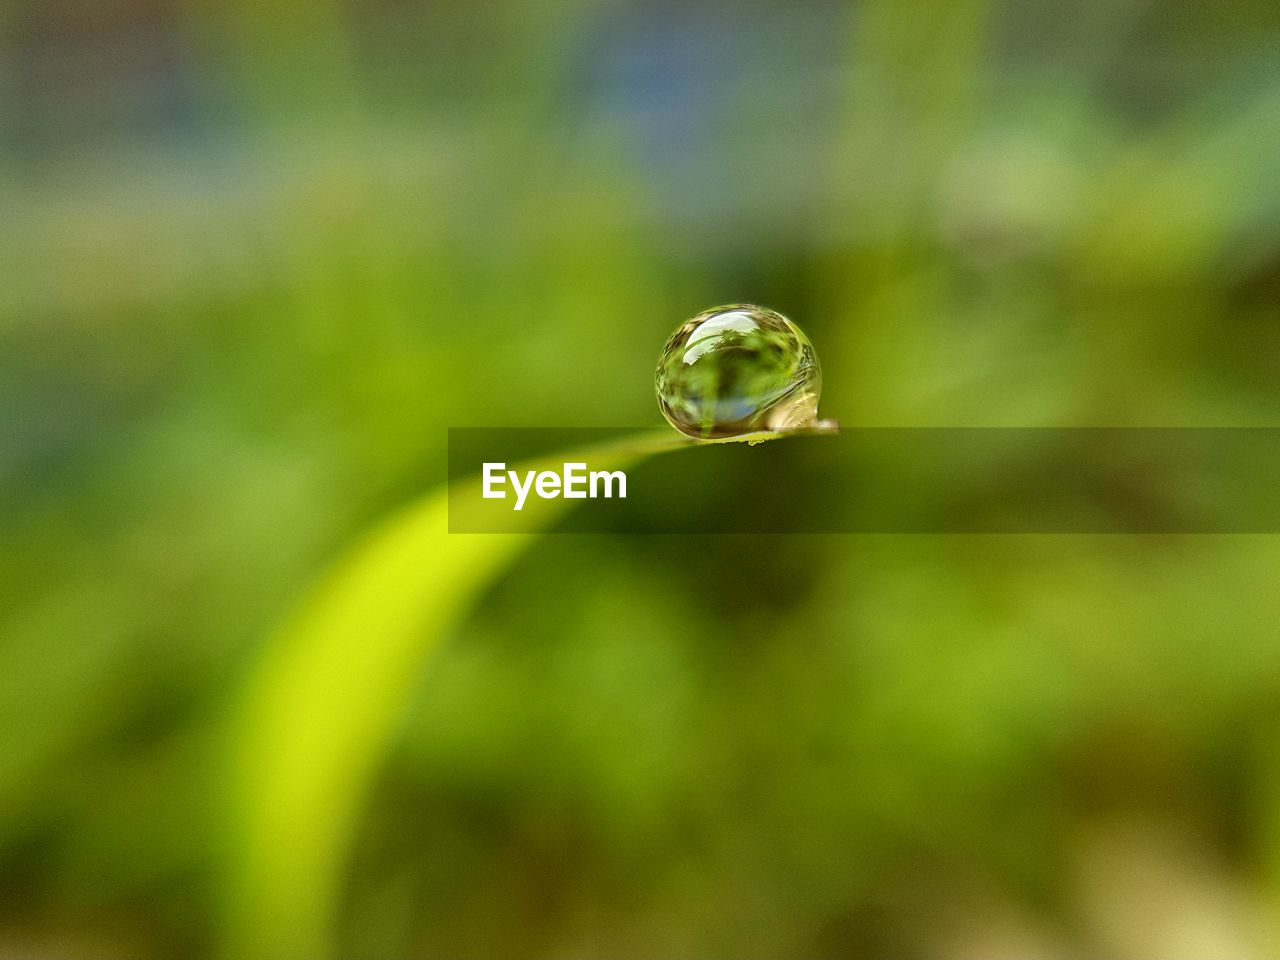 plant, vulnerability, green color, close-up, fragility, growth, selective focus, beauty in nature, nature, focus on foreground, day, no people, freshness, plant part, leaf, drop, outdoors, water, tranquility, curled up, purity, dew, blade of grass